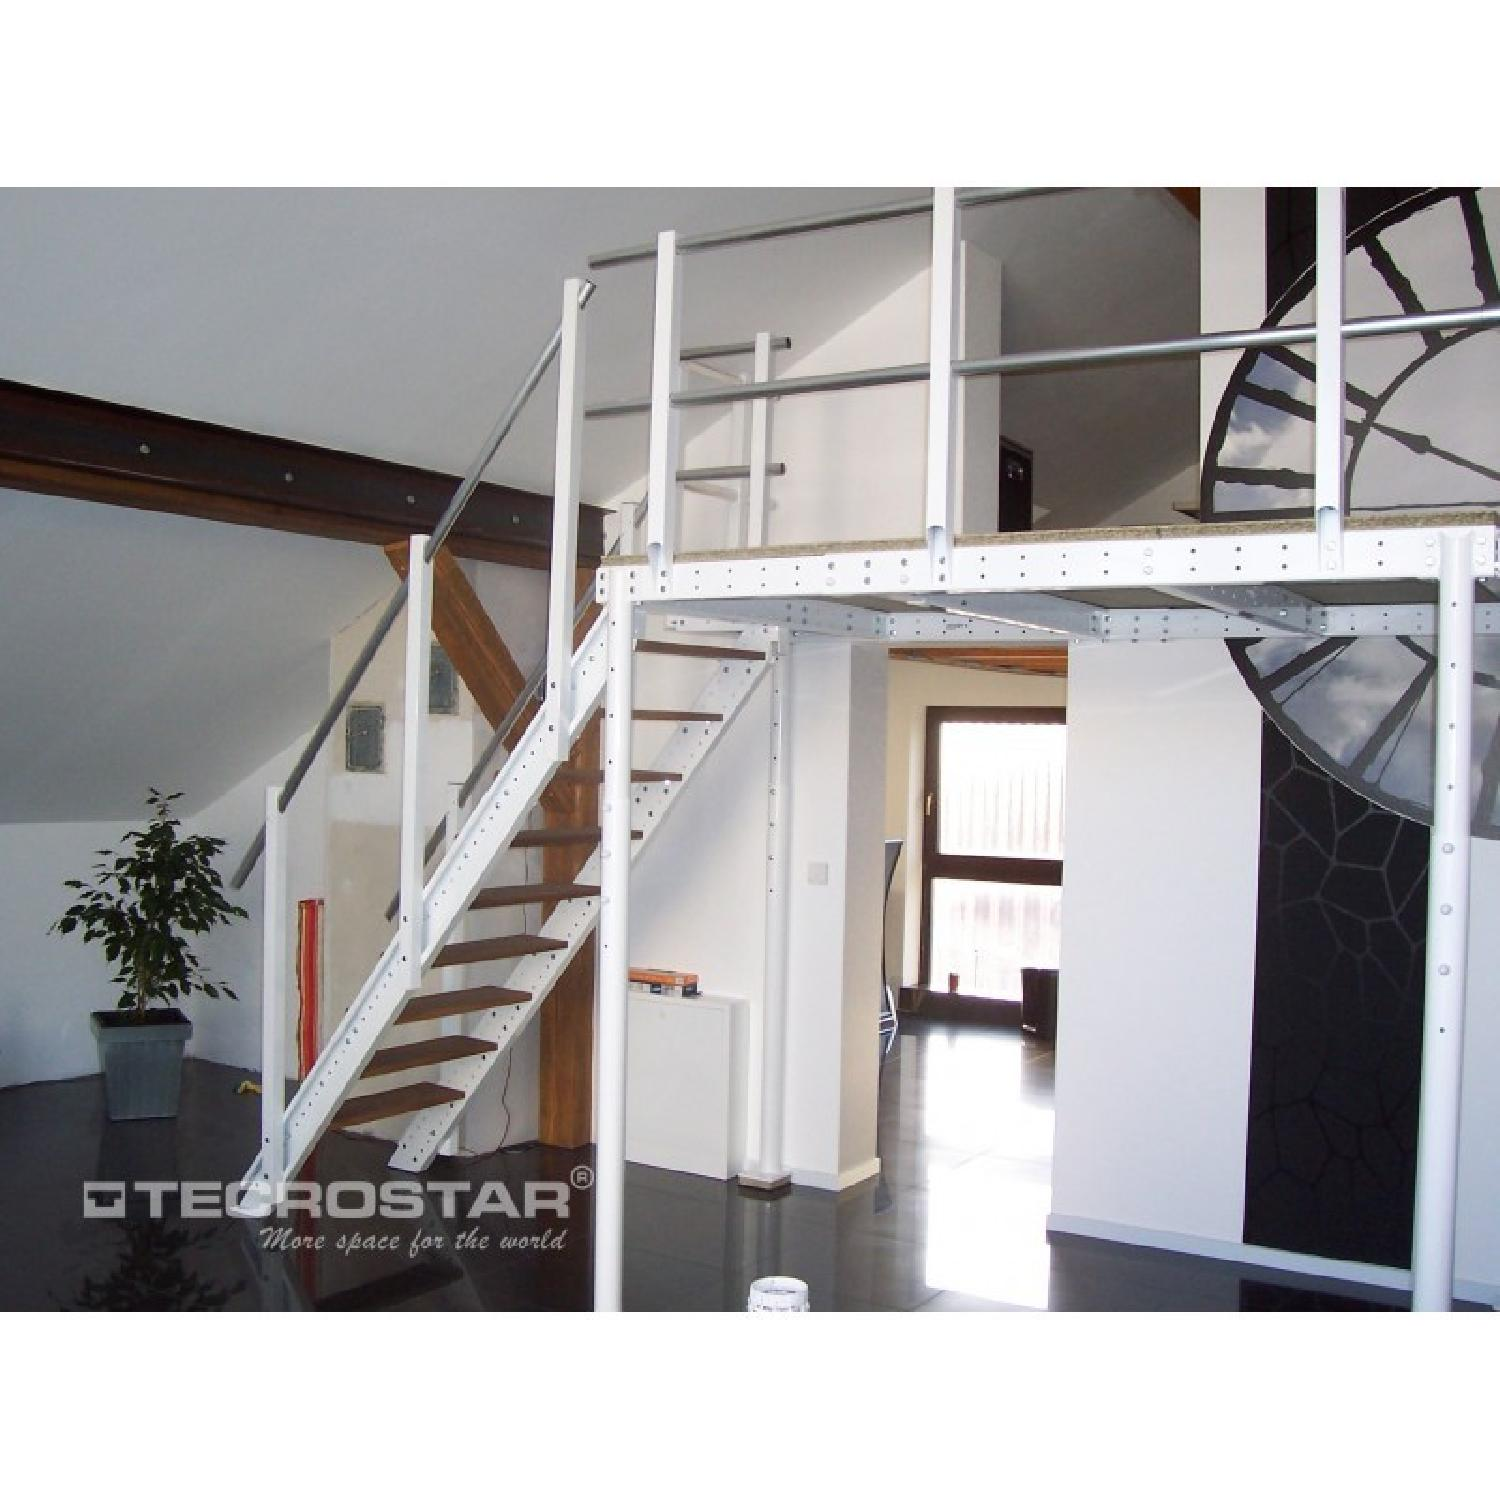 Loft Bed TS 8 w/ Lateral Stairs - image-2